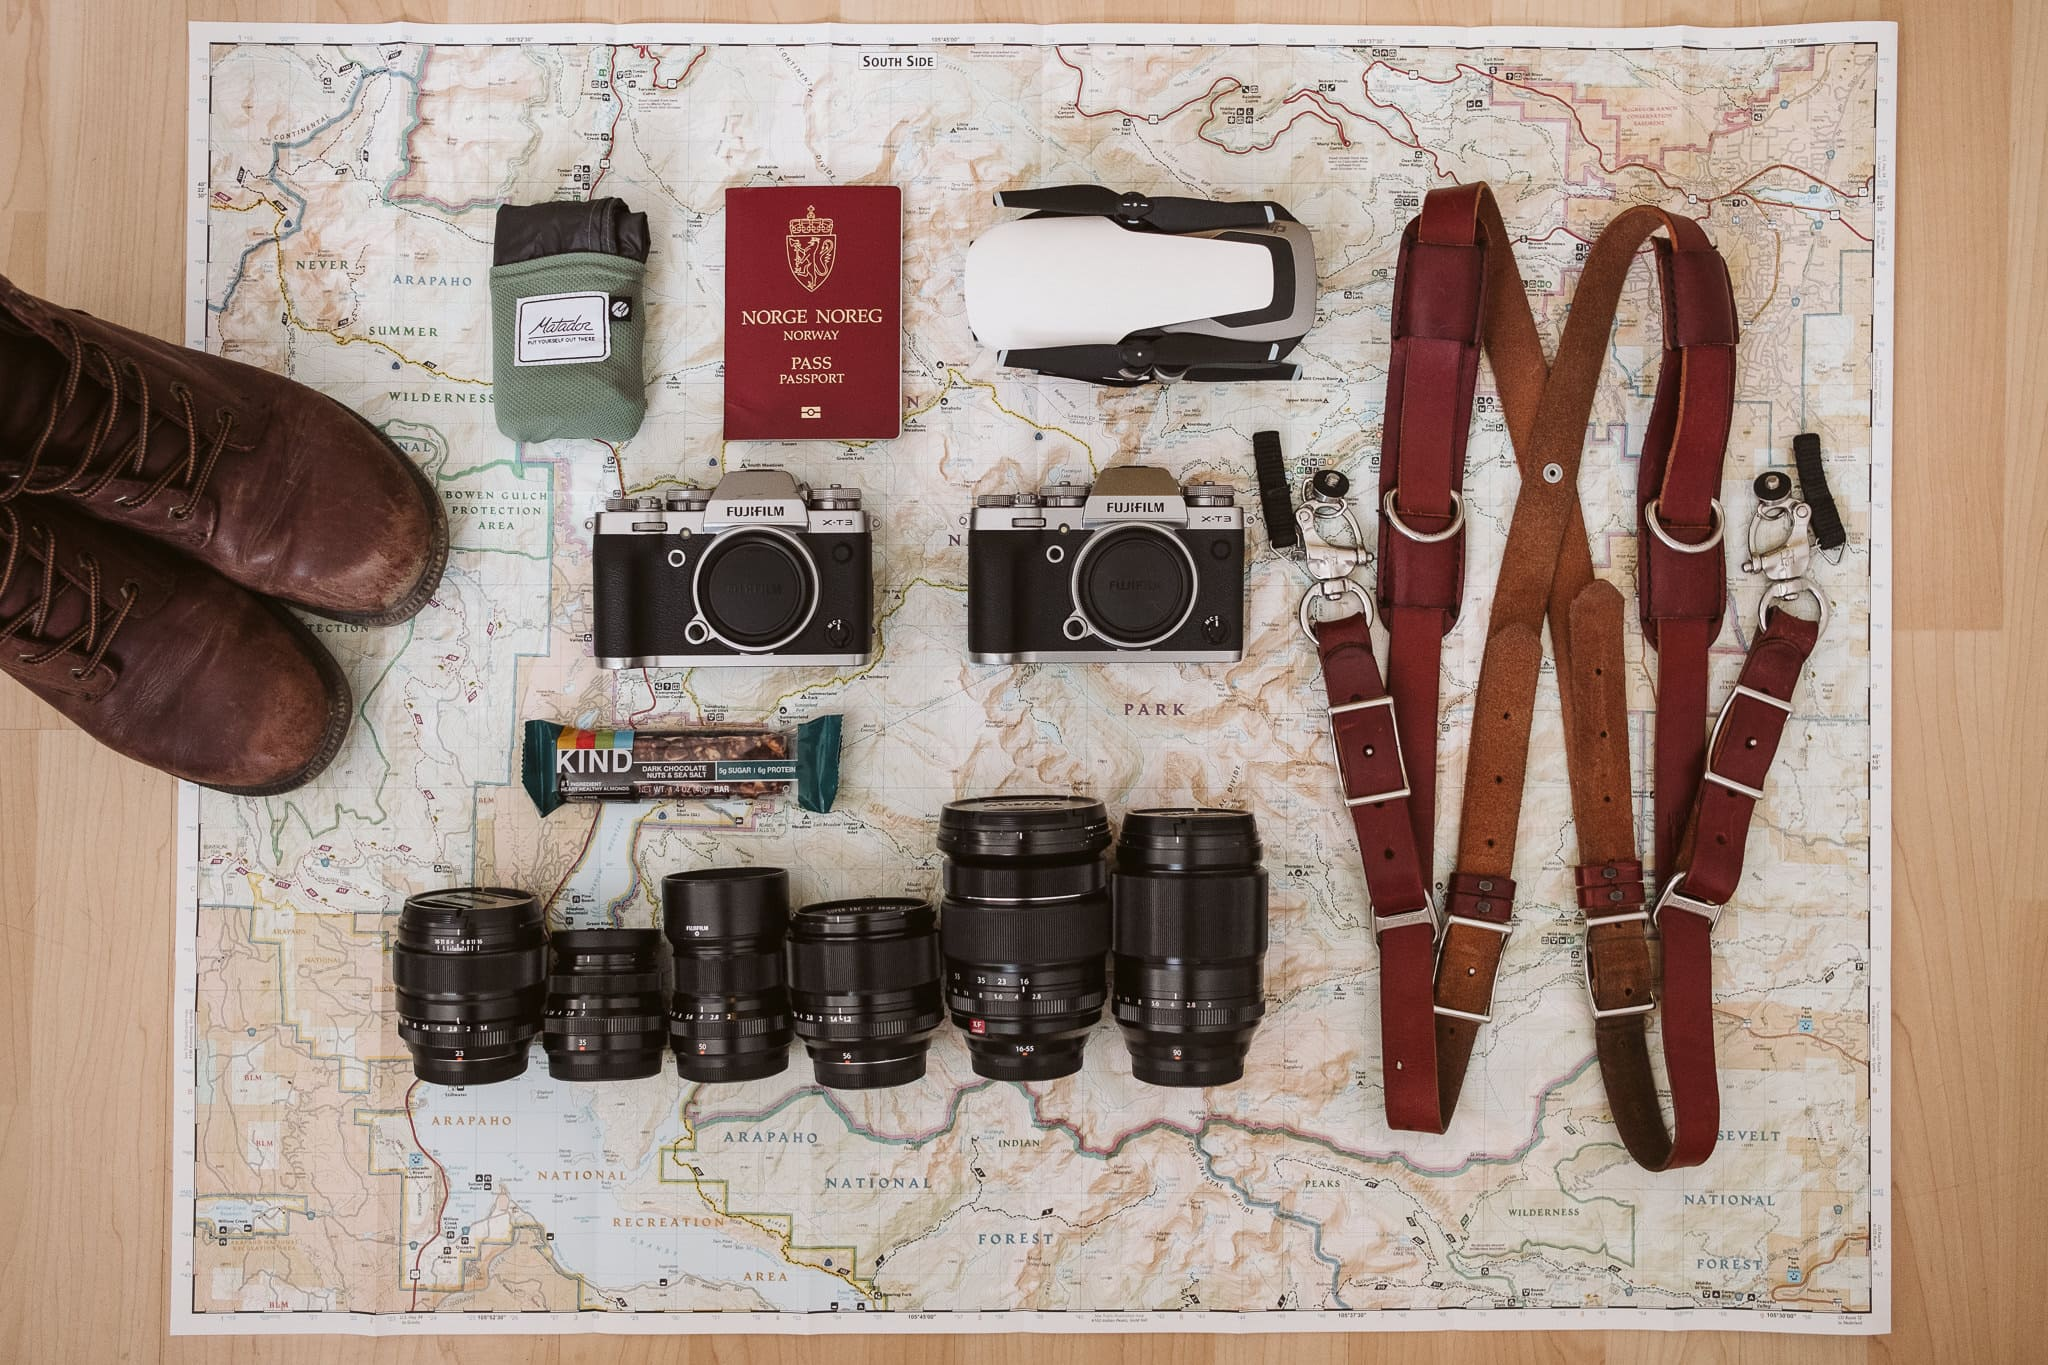 Fuji mirrorless gear bag